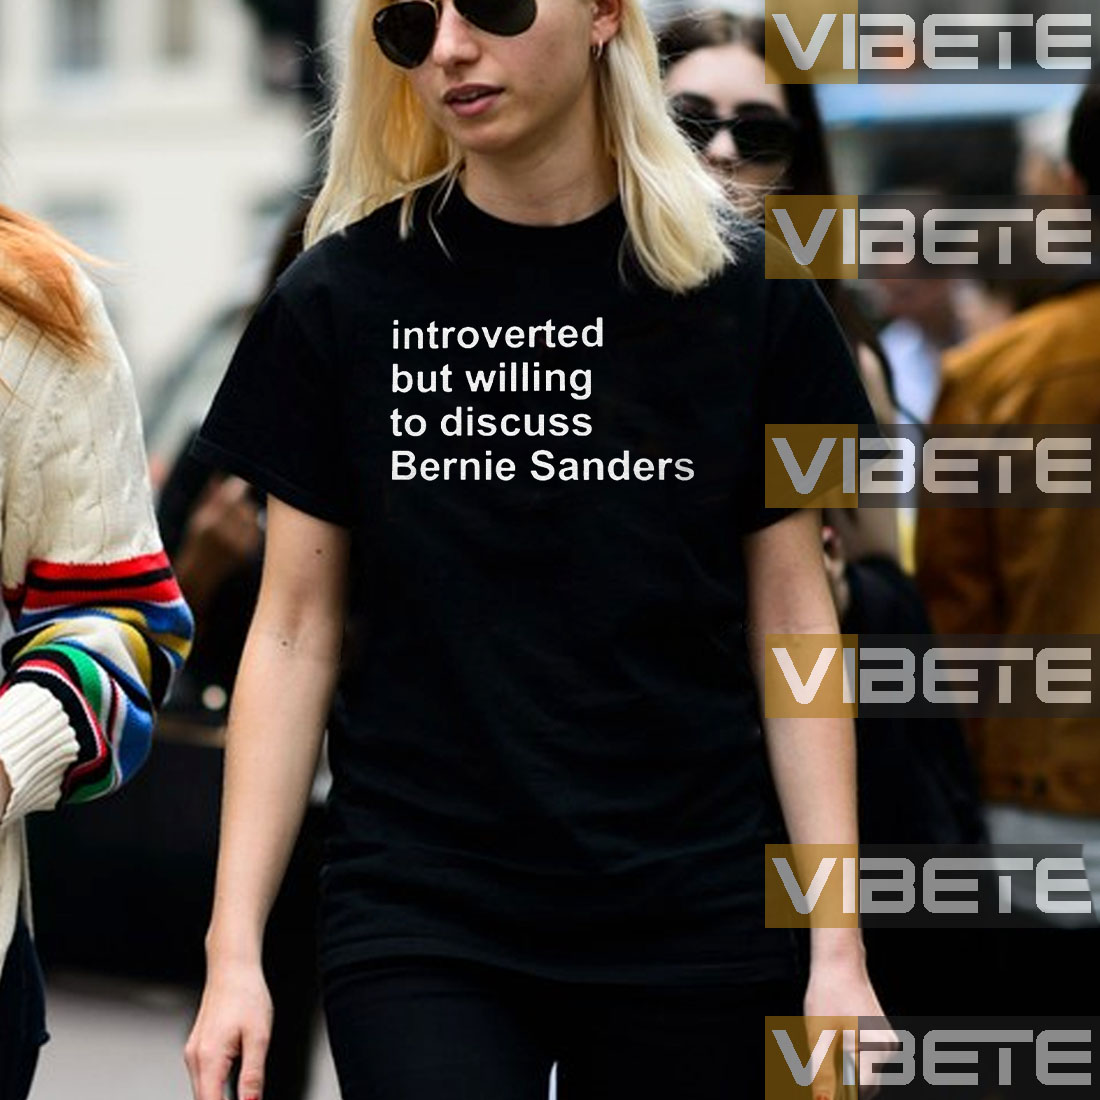 Introverted But Willing To Discuss Bernie Sanders Shirt